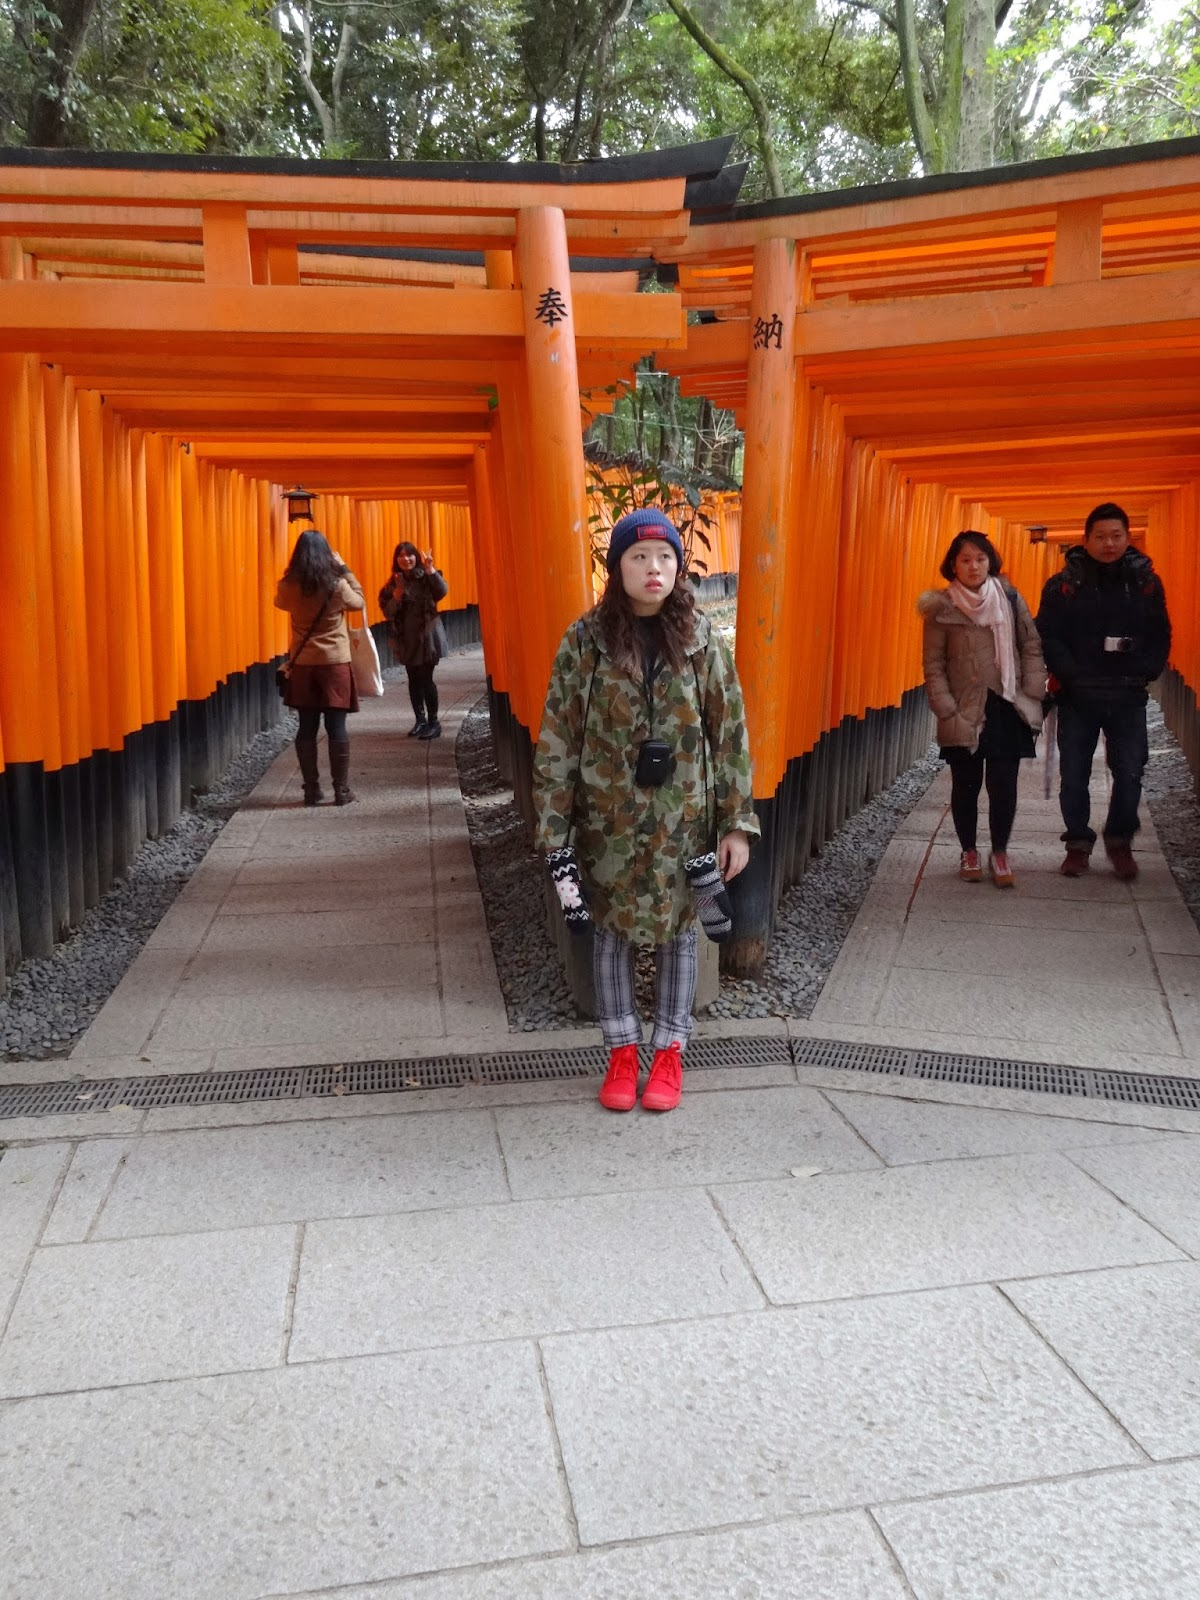 Rainie at the Fushimi Inari Shrine in Kyoto